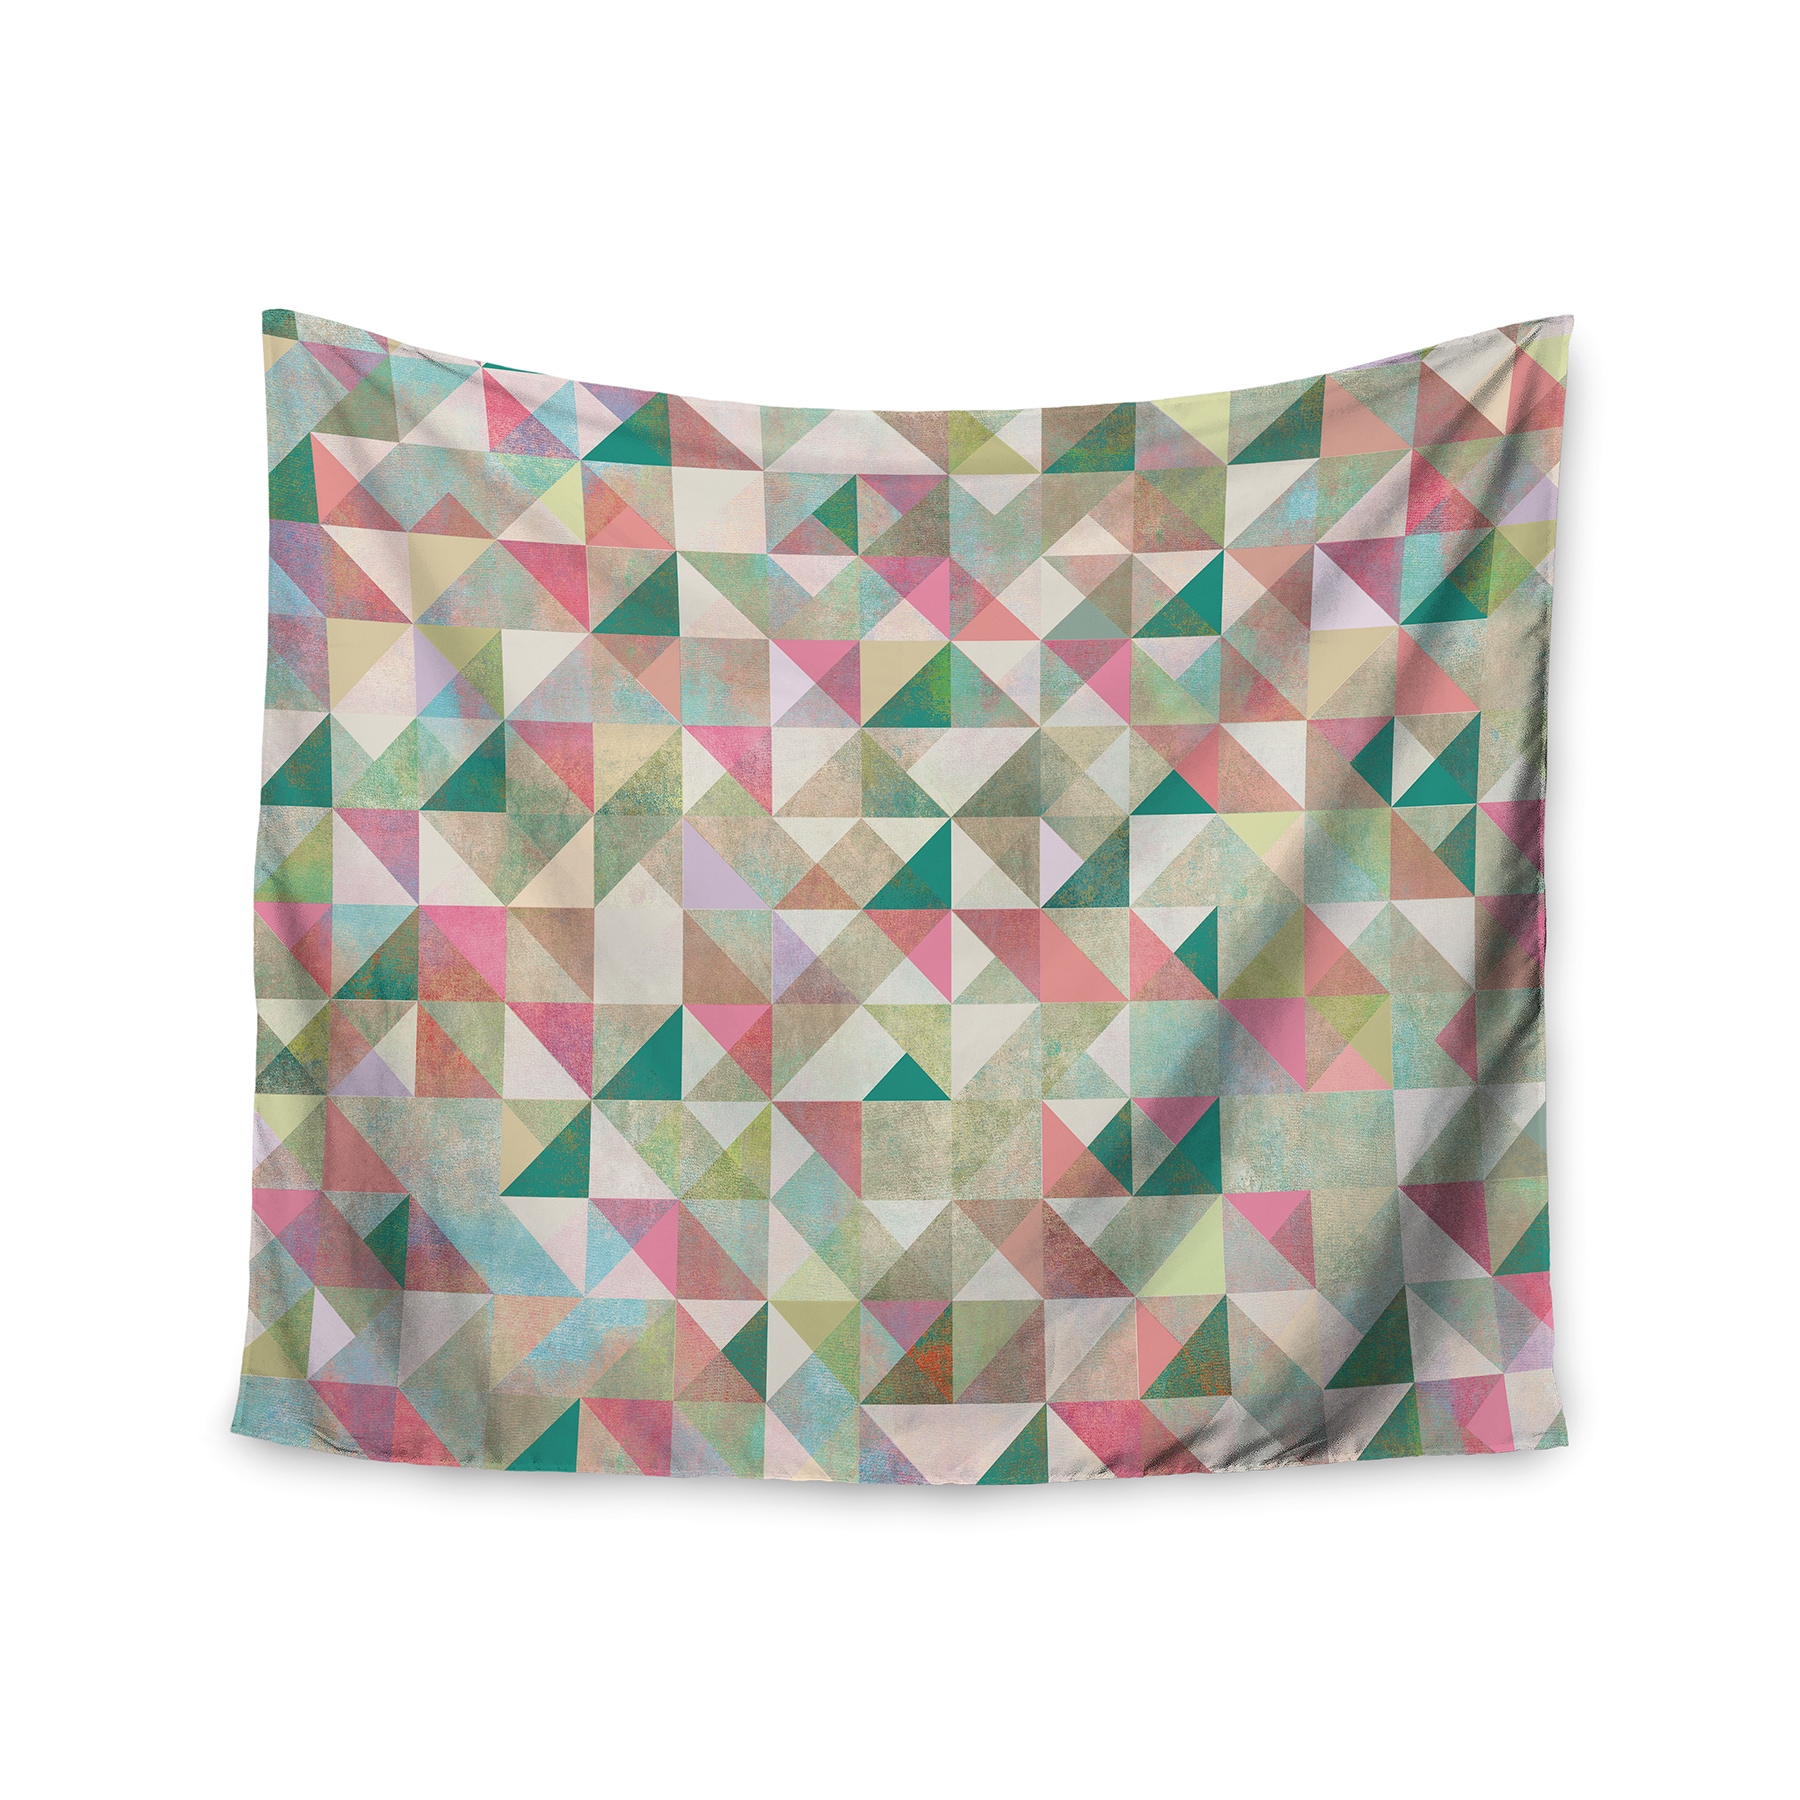 Kess InHouse Mareike Boehmer Graphic 75 Teal Pink Wall Tapestry 51 x 60